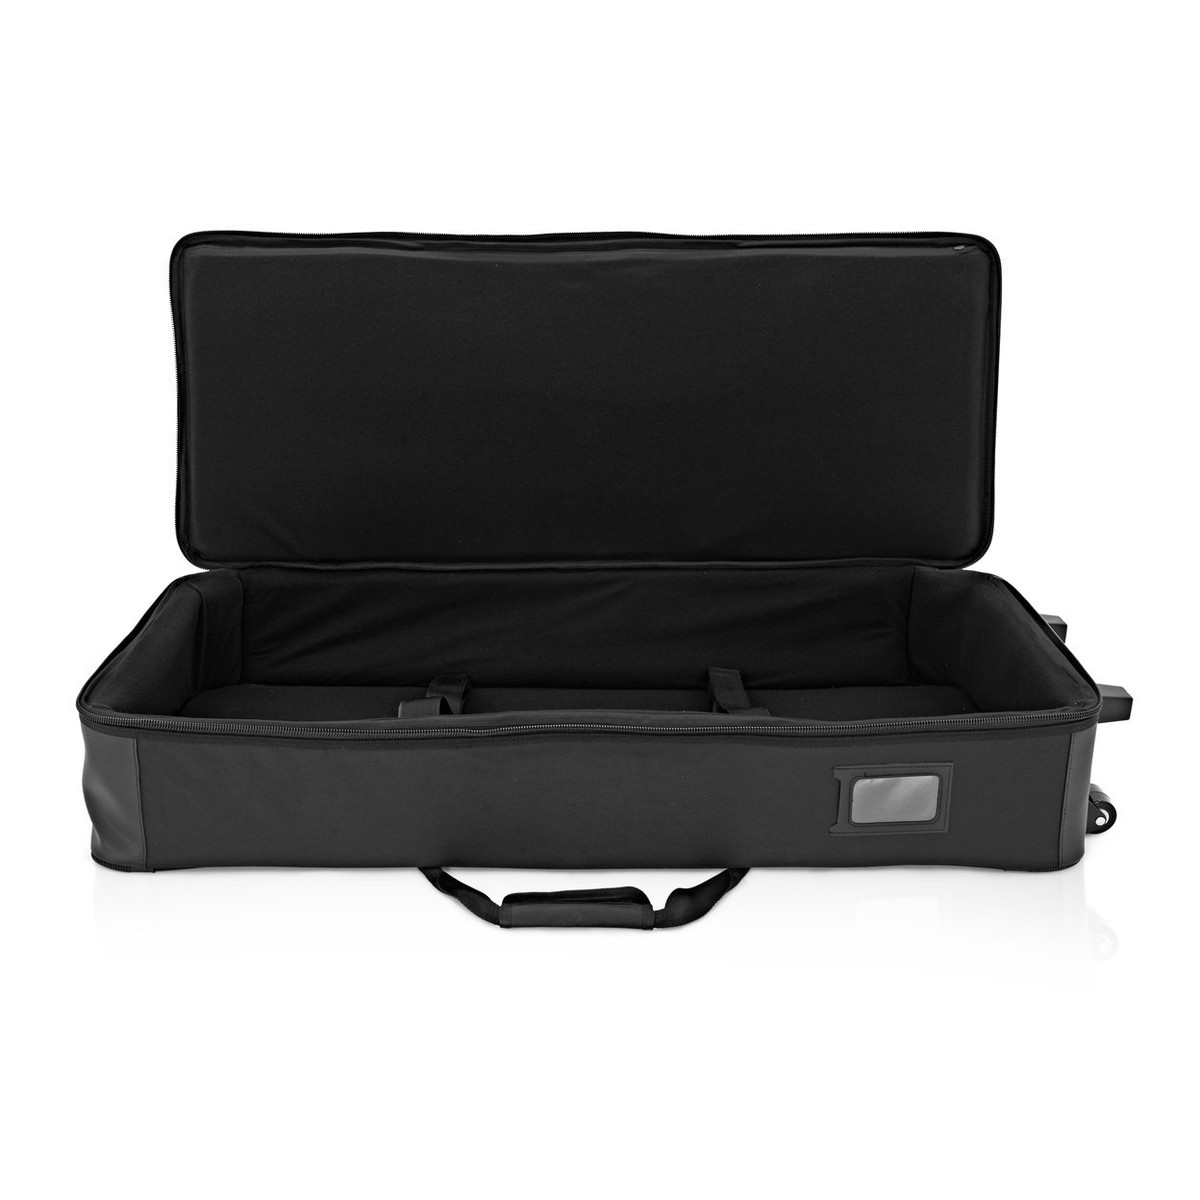 Roland Fp 30 Digital Piano With Wheeled Soft Case At Gear4music